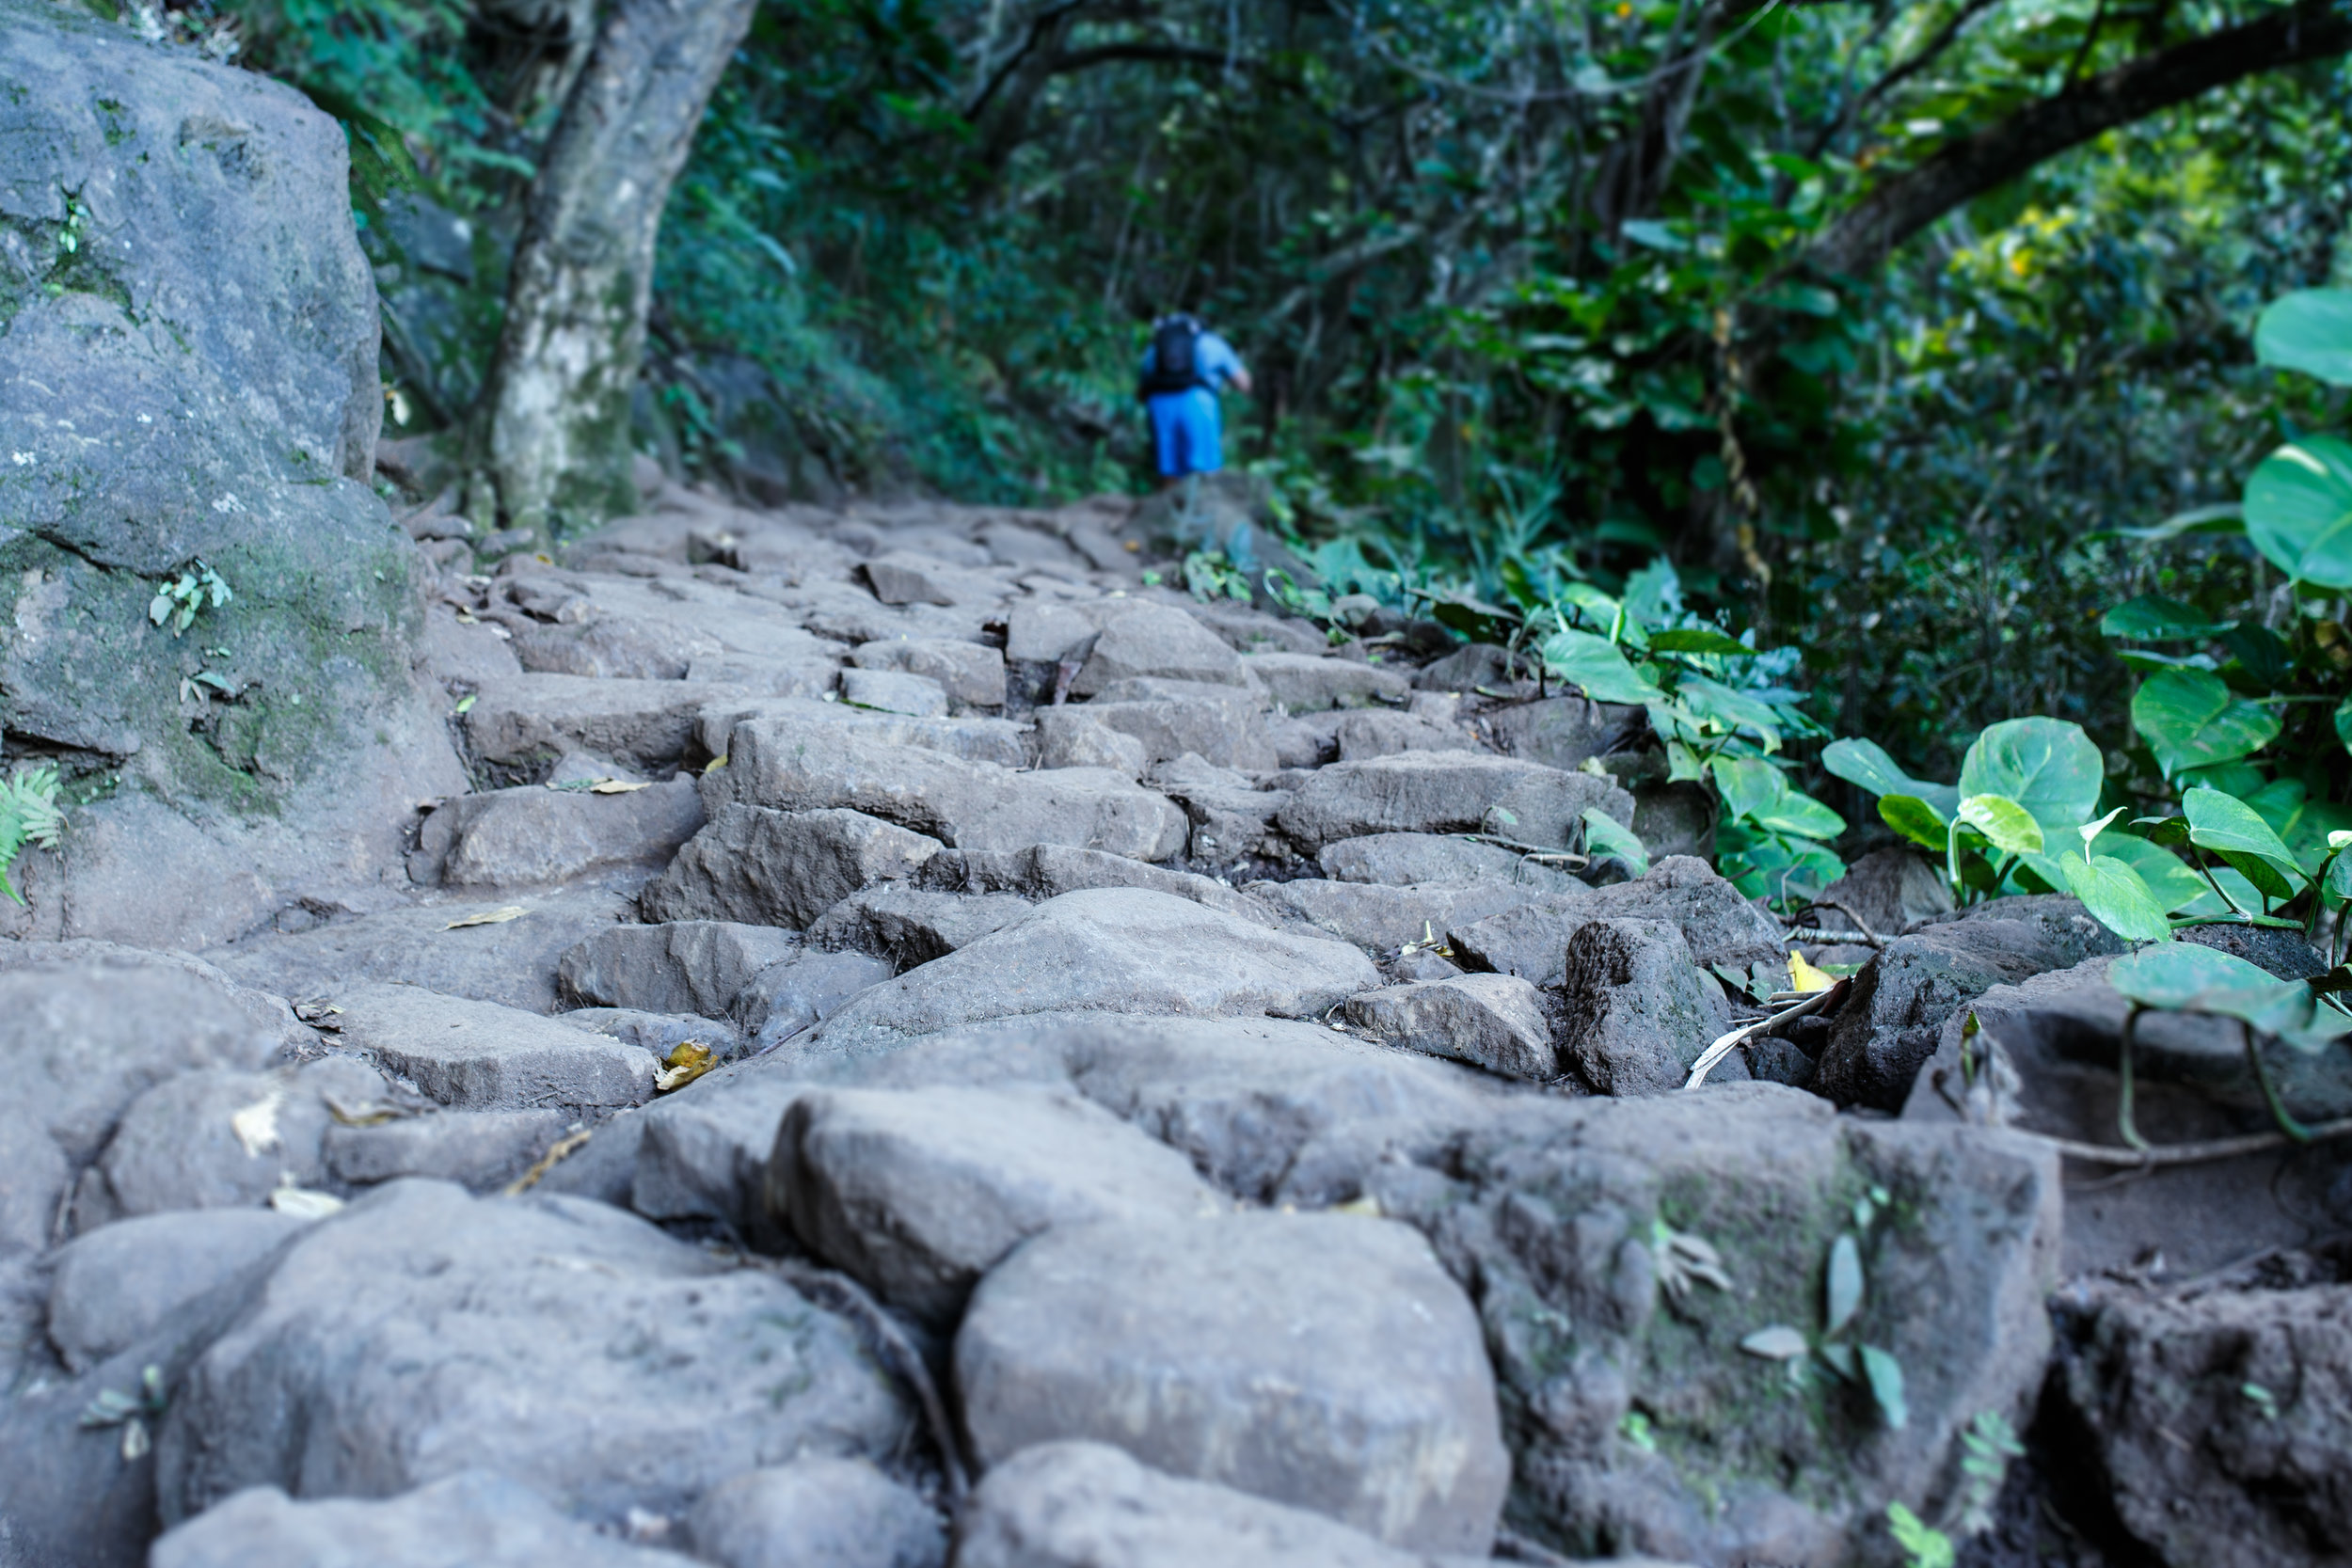 The first half mile of the trail is lined with stones to make hiking in all conditions super simple.